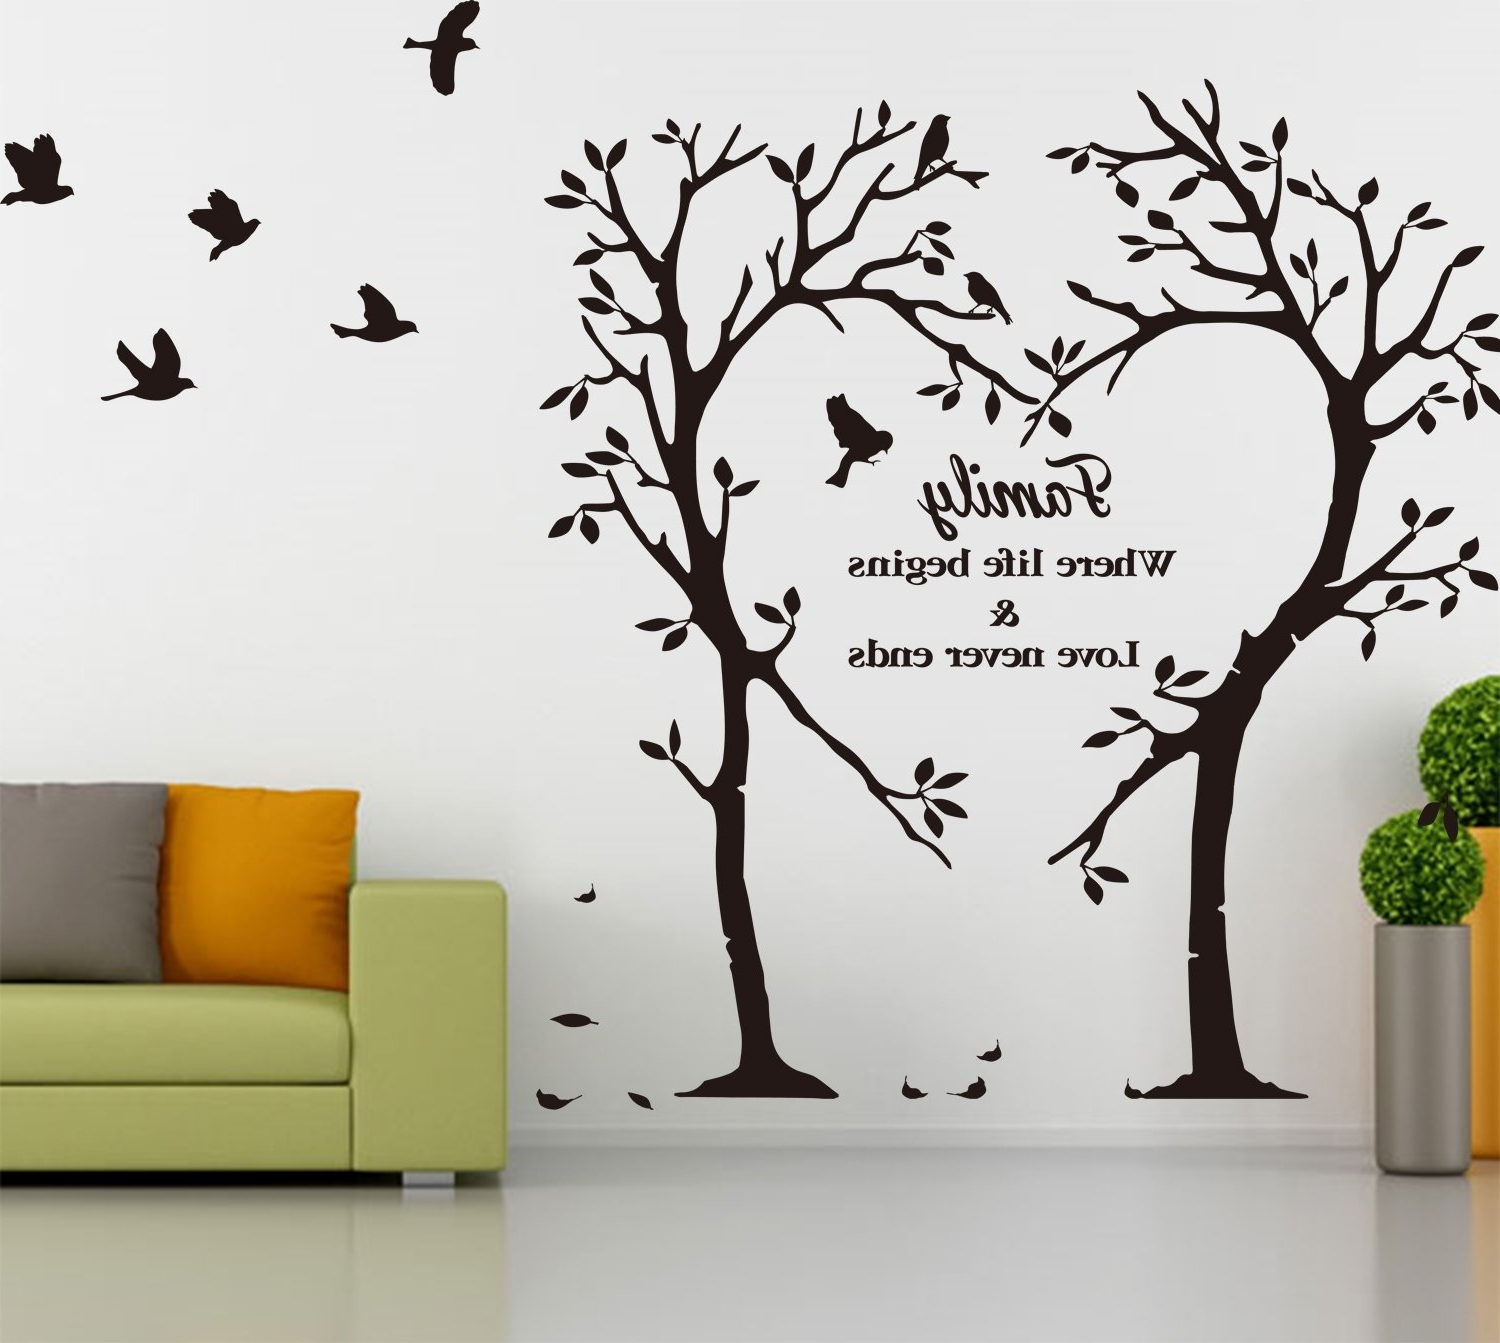 2018 South Africa Wall Art 3D Regarding Beautiful Design Ideas Wall Art Stickers Uk Quotes Next Ebay For (View 1 of 15)